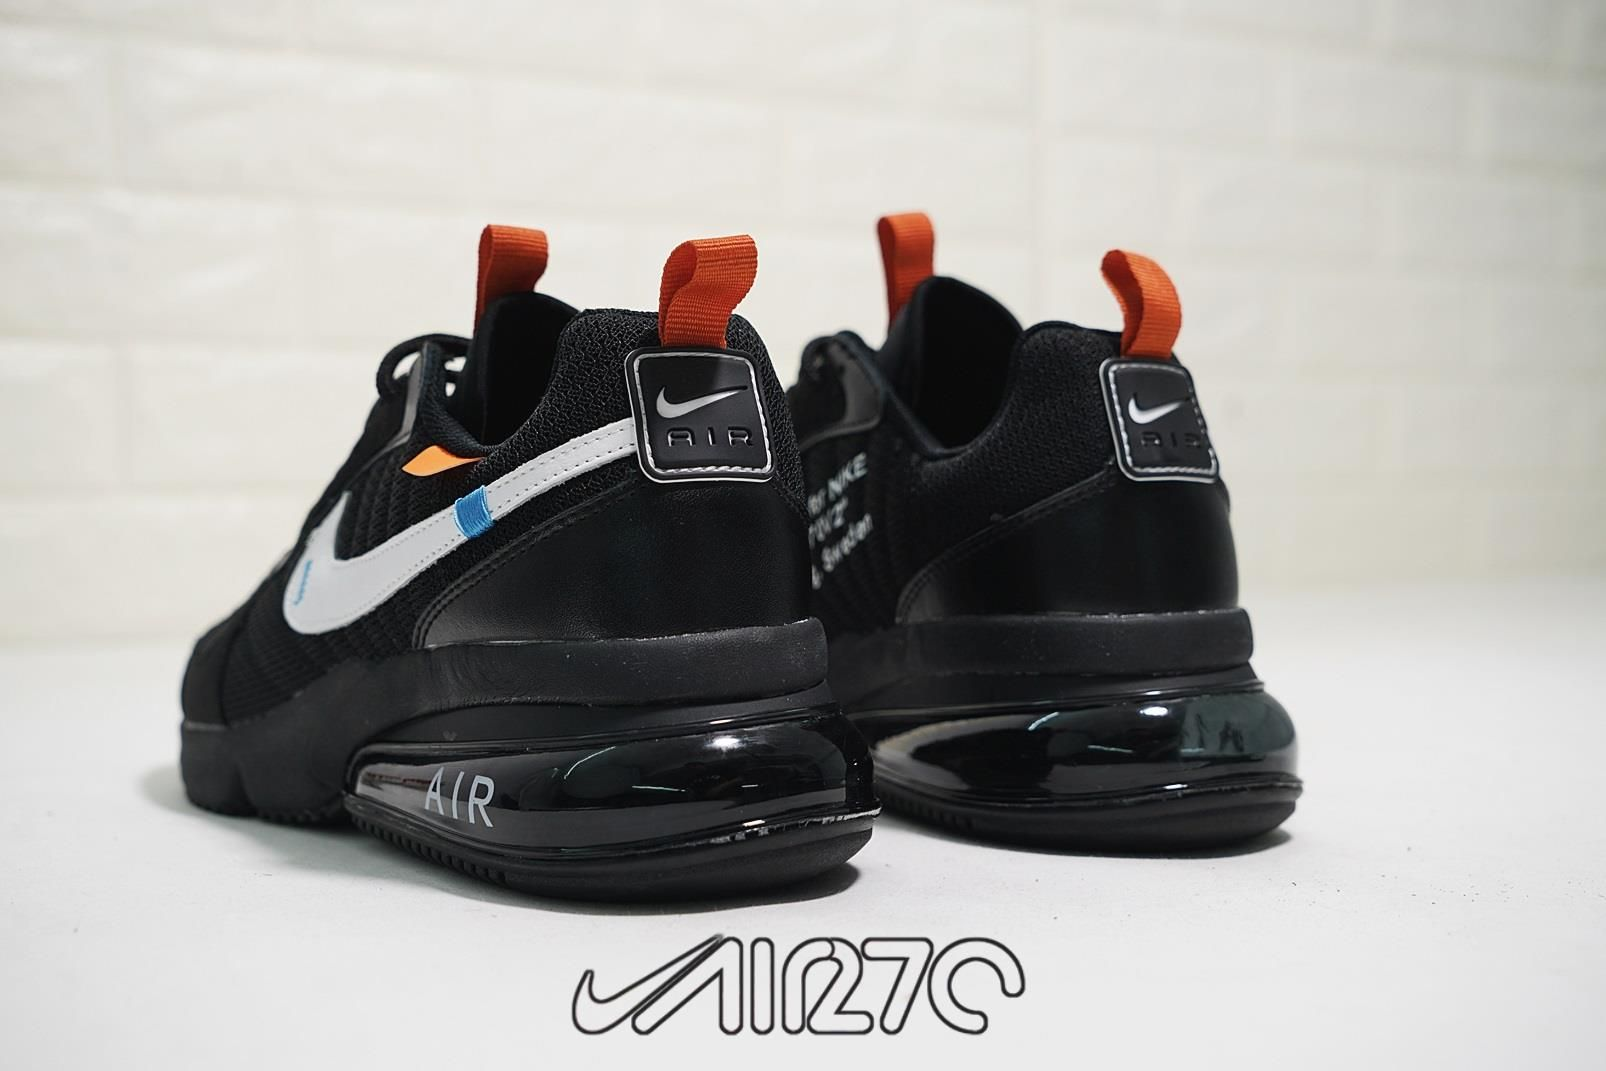 2d87806b1bf8 Off-White x Nike Air Max 270 Futura Black-White Orange 2018